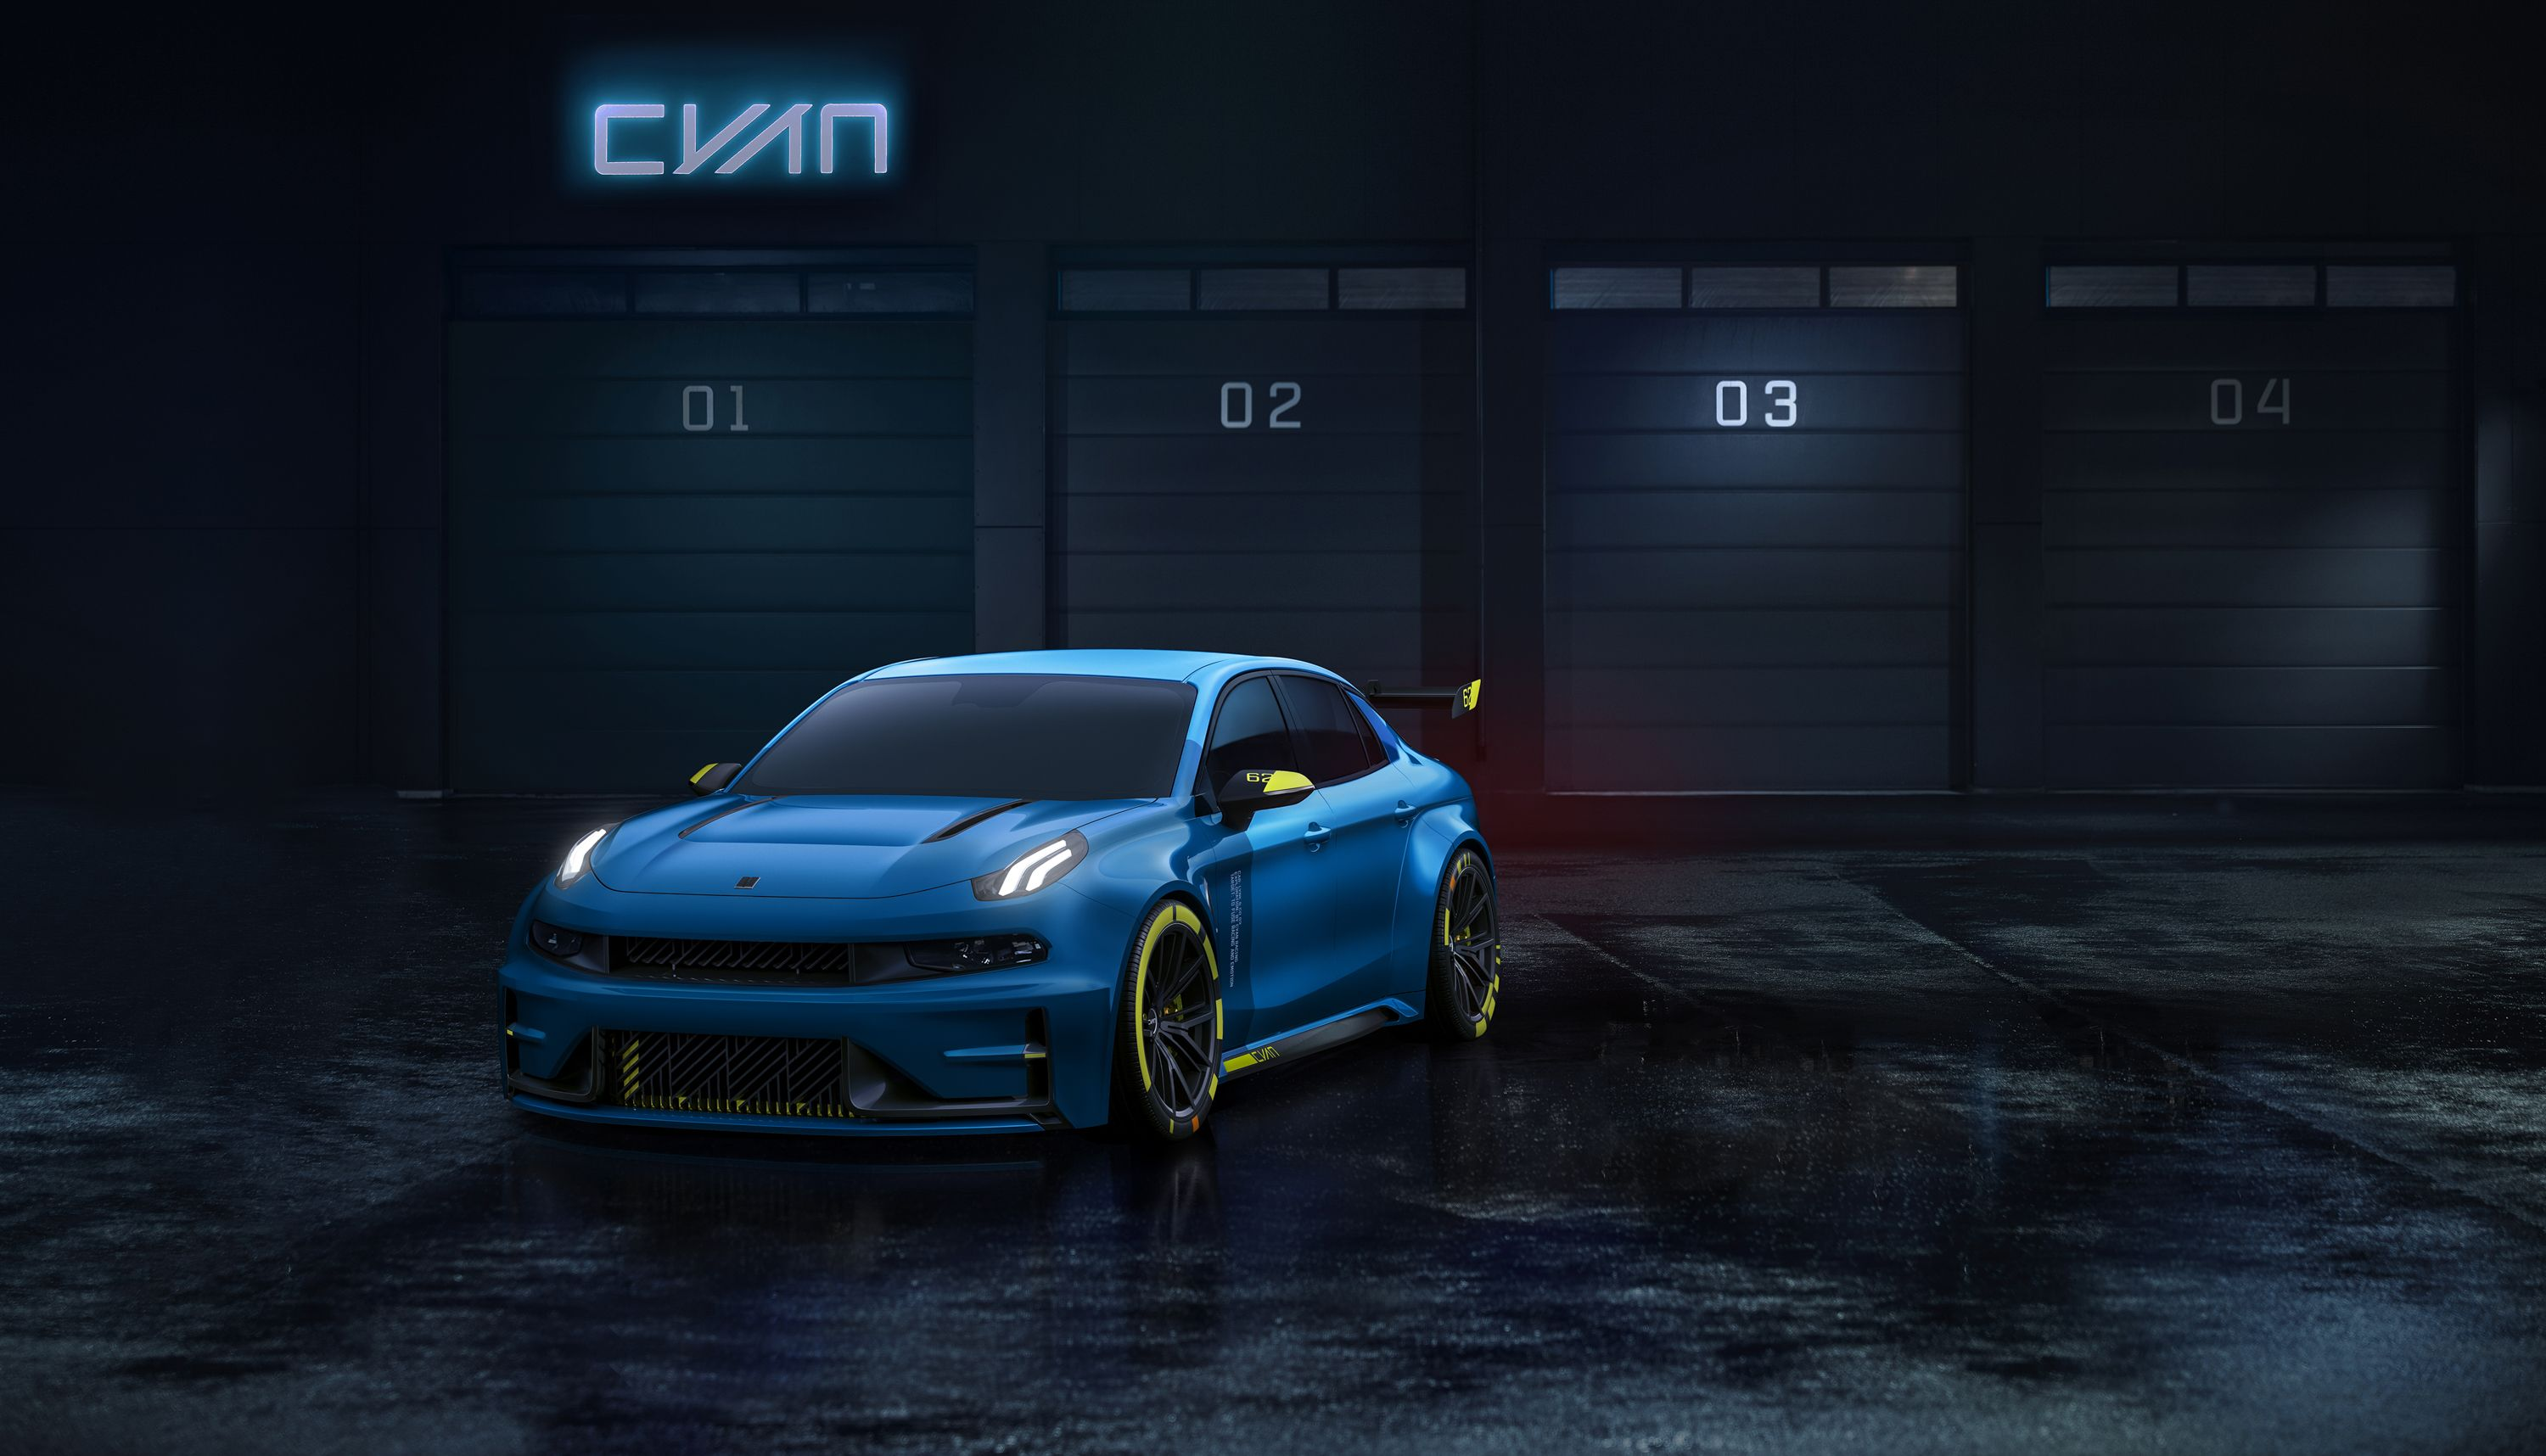 2018 Lynk Co 03 Tcr Road Car Concept By Cyan Racing Car Wallpapers Car Hd Wallpaper